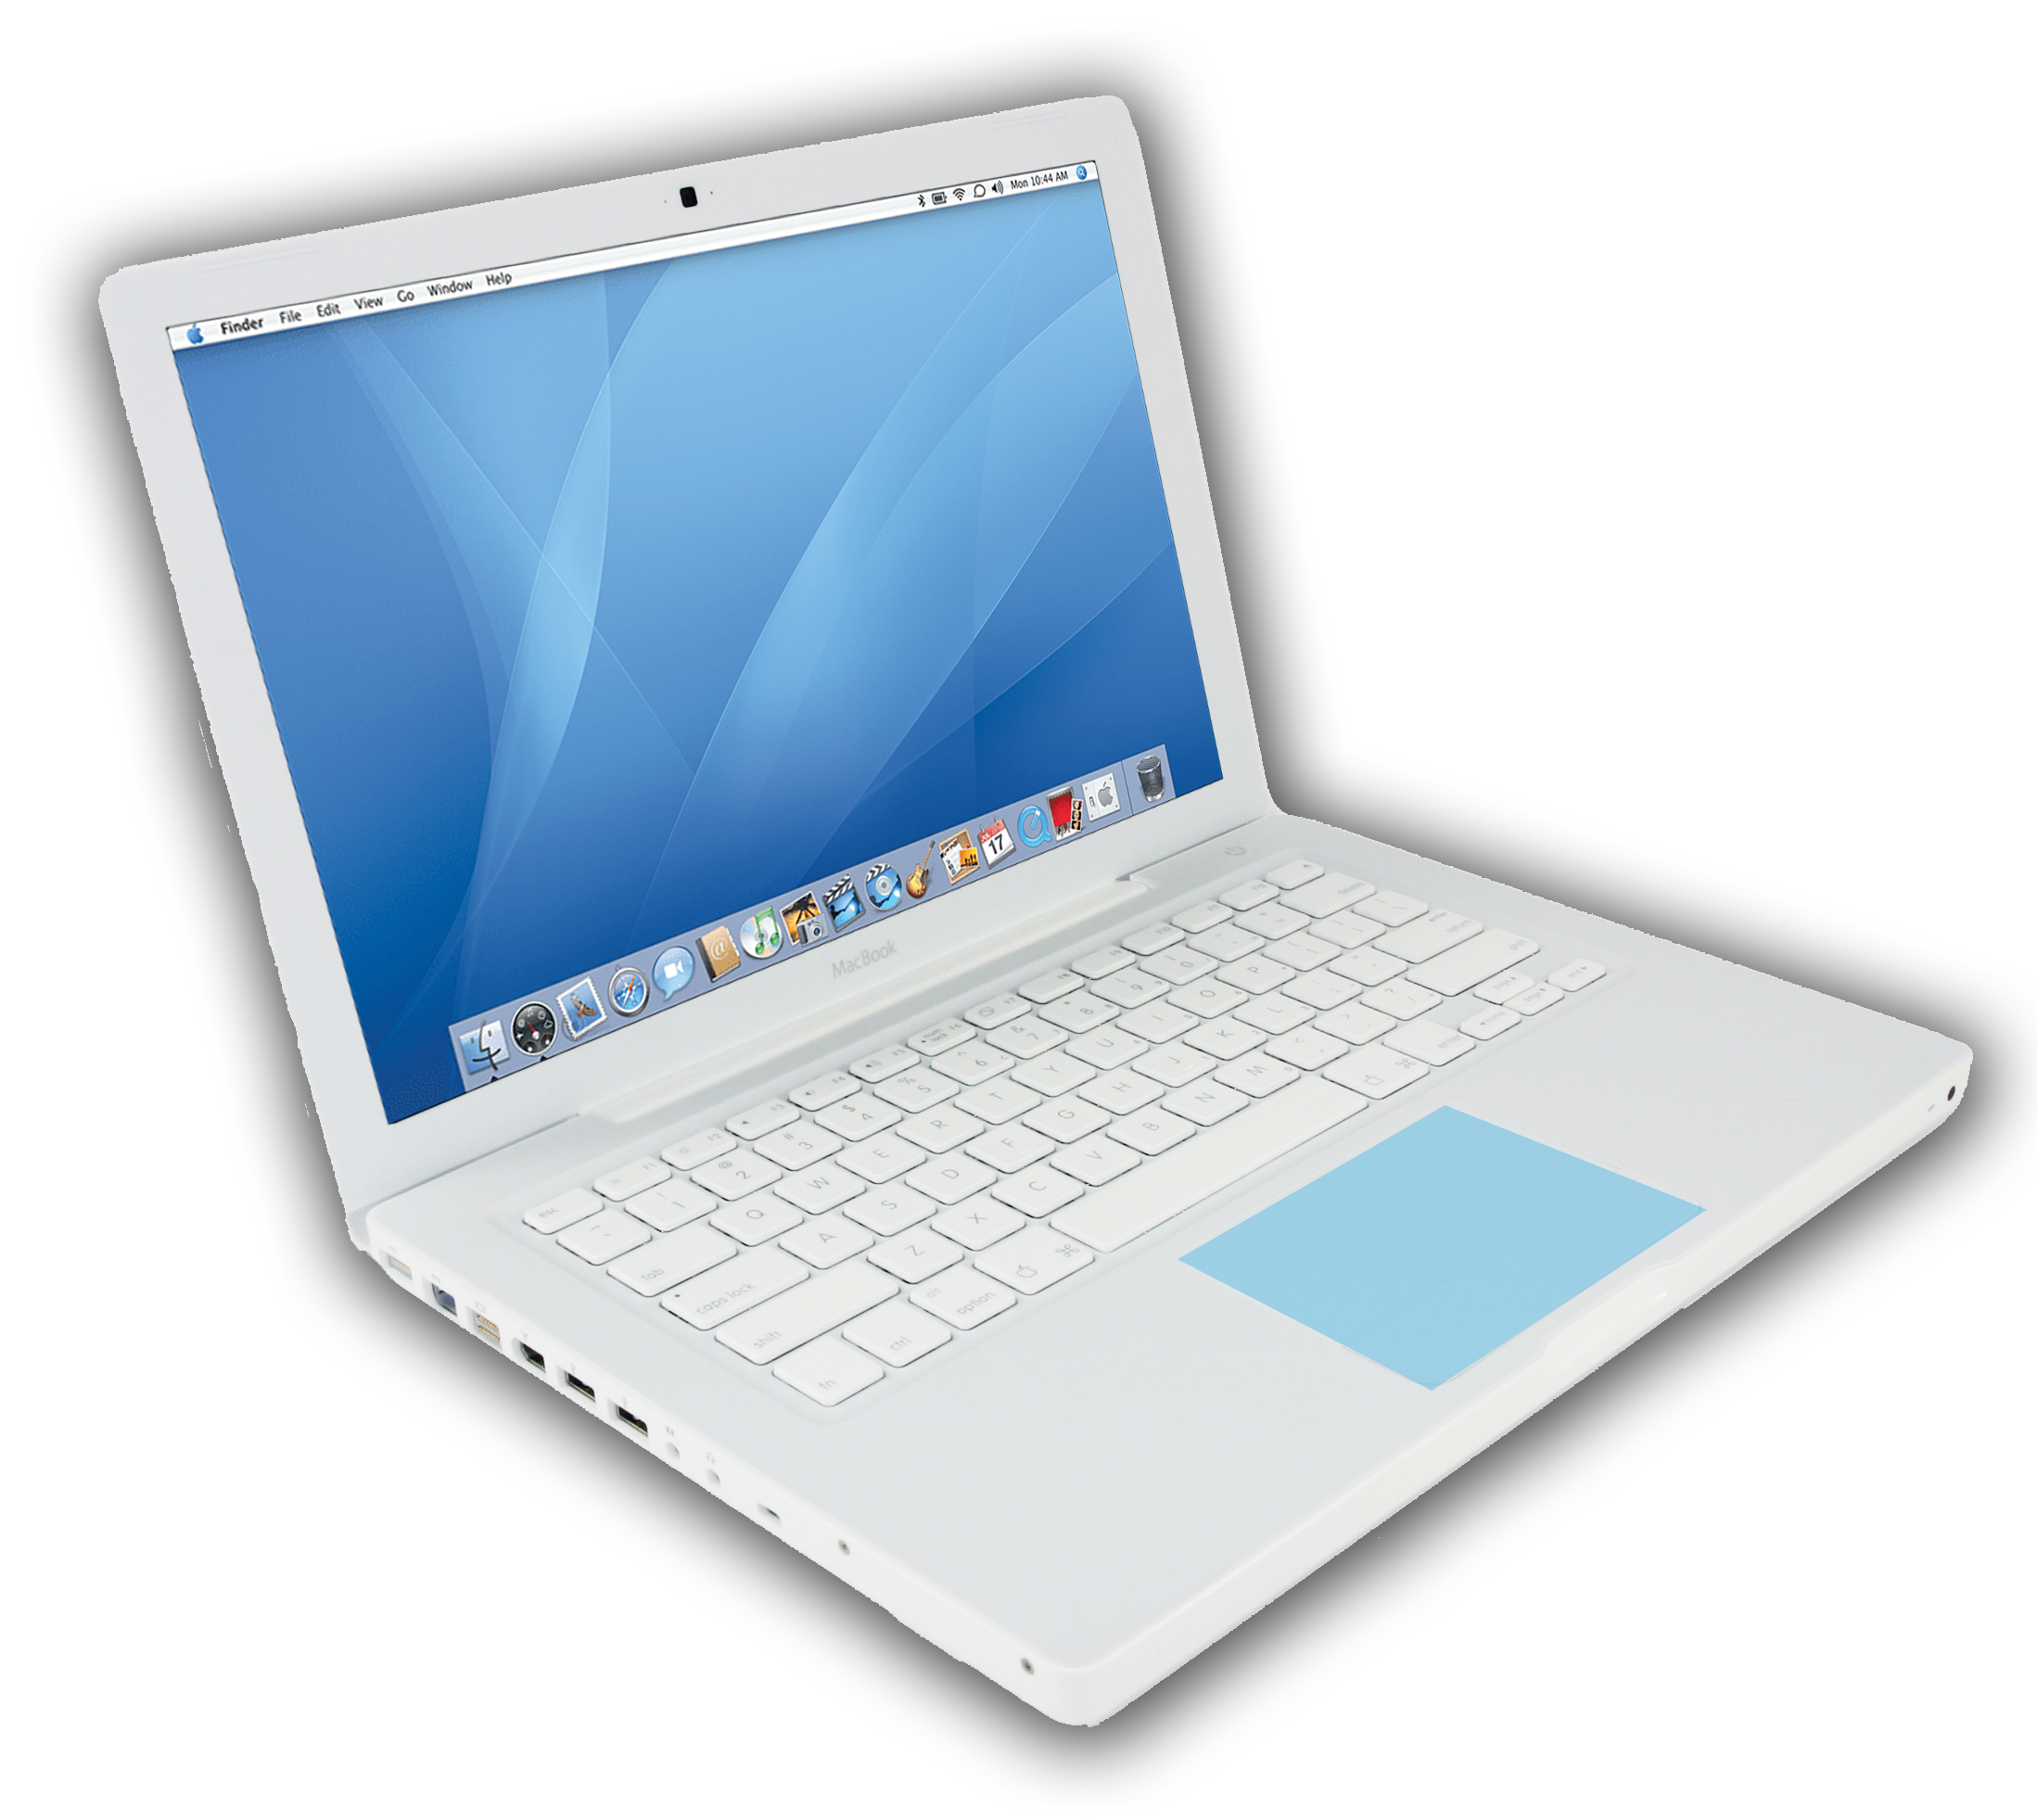 MacBook A1181 trackpad replacement. Phones Rescue Apple repair specialists Bournemouth Christchurch Poole